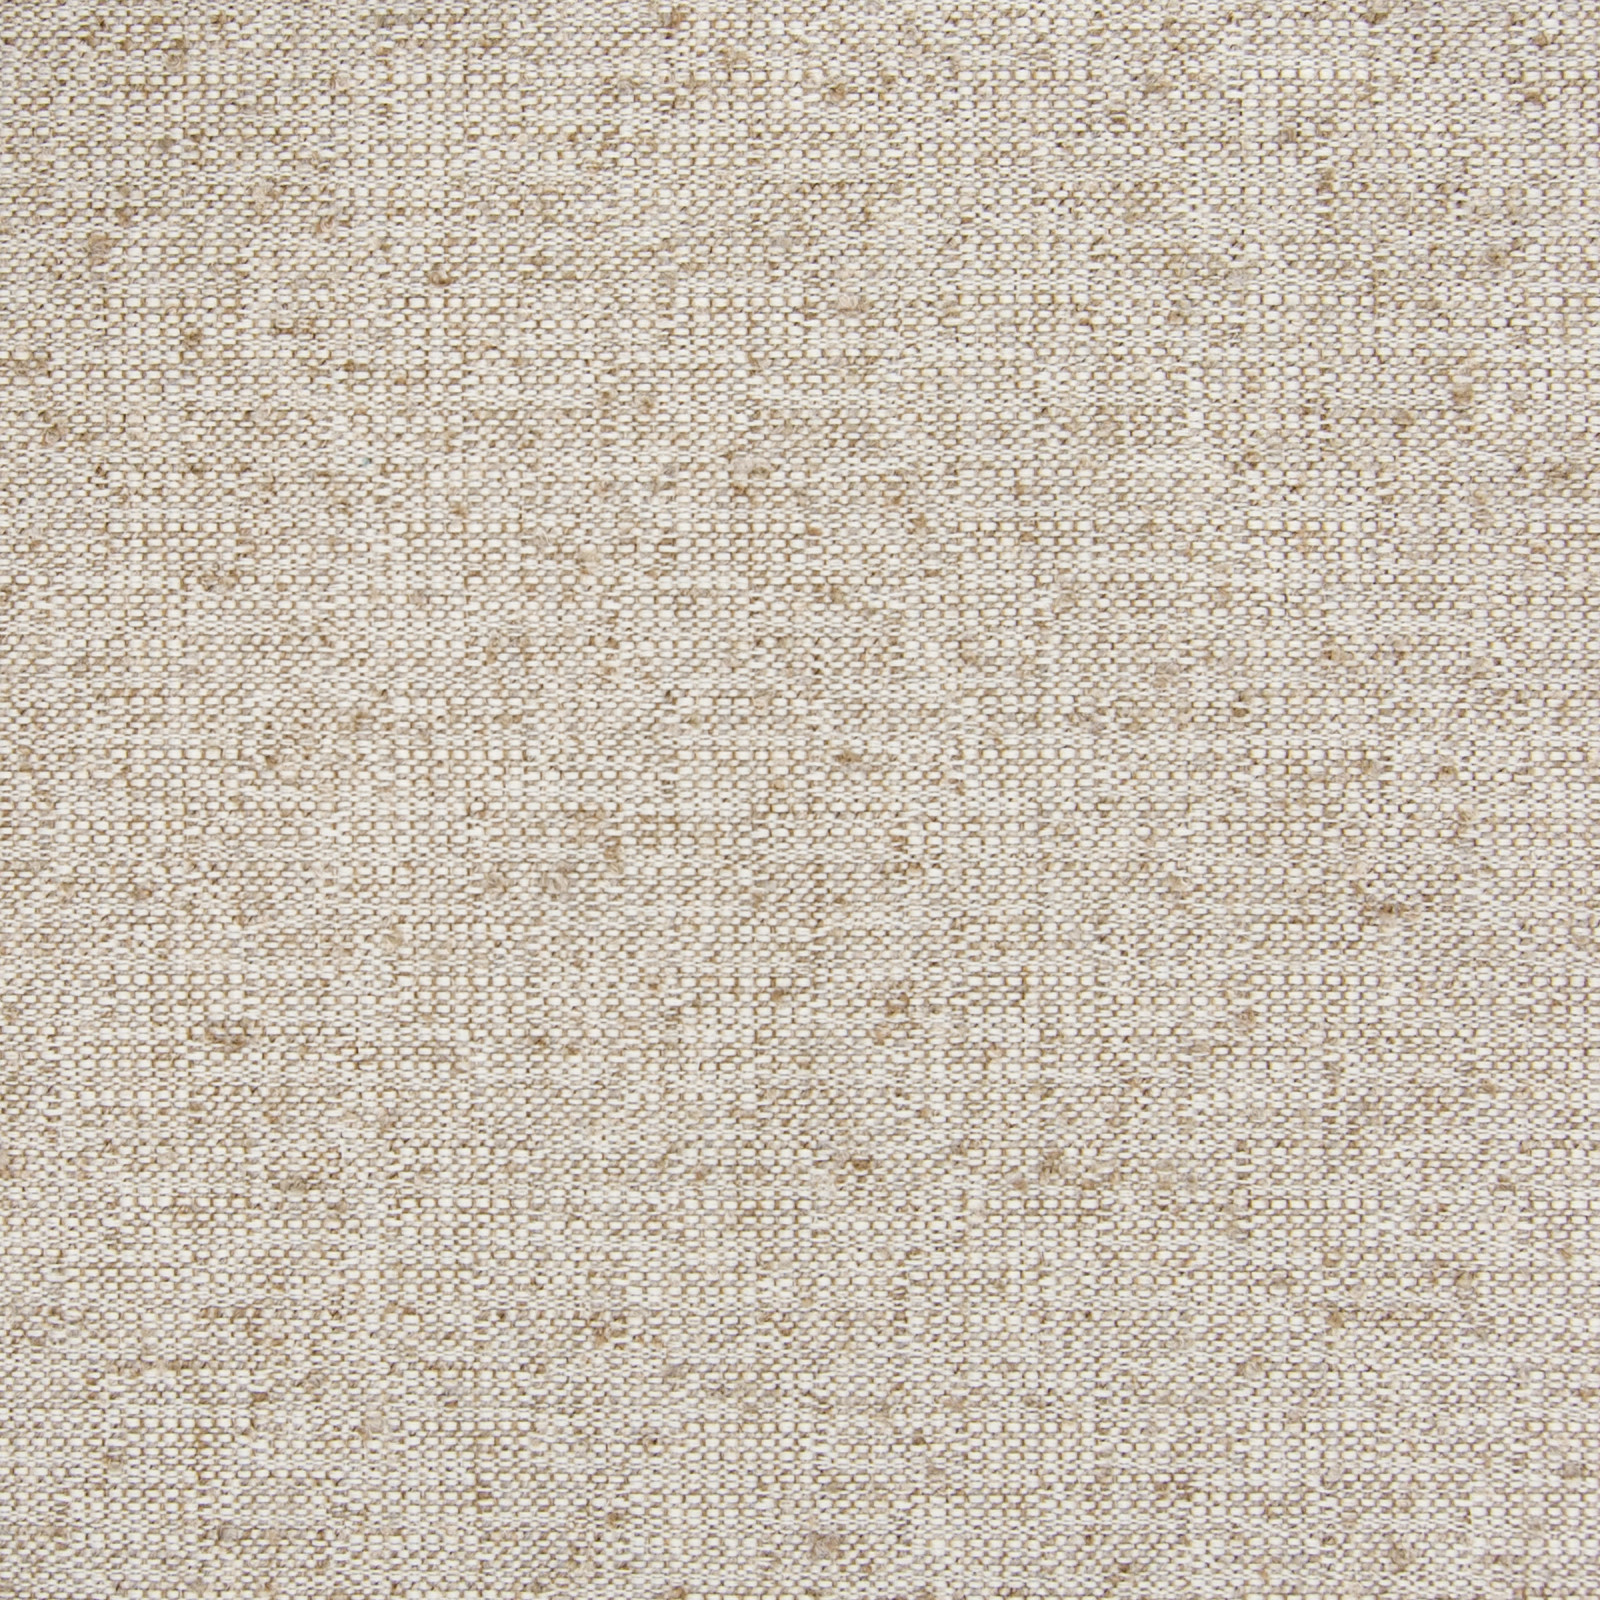 B5618 Hemp Greenhouse Fabrics